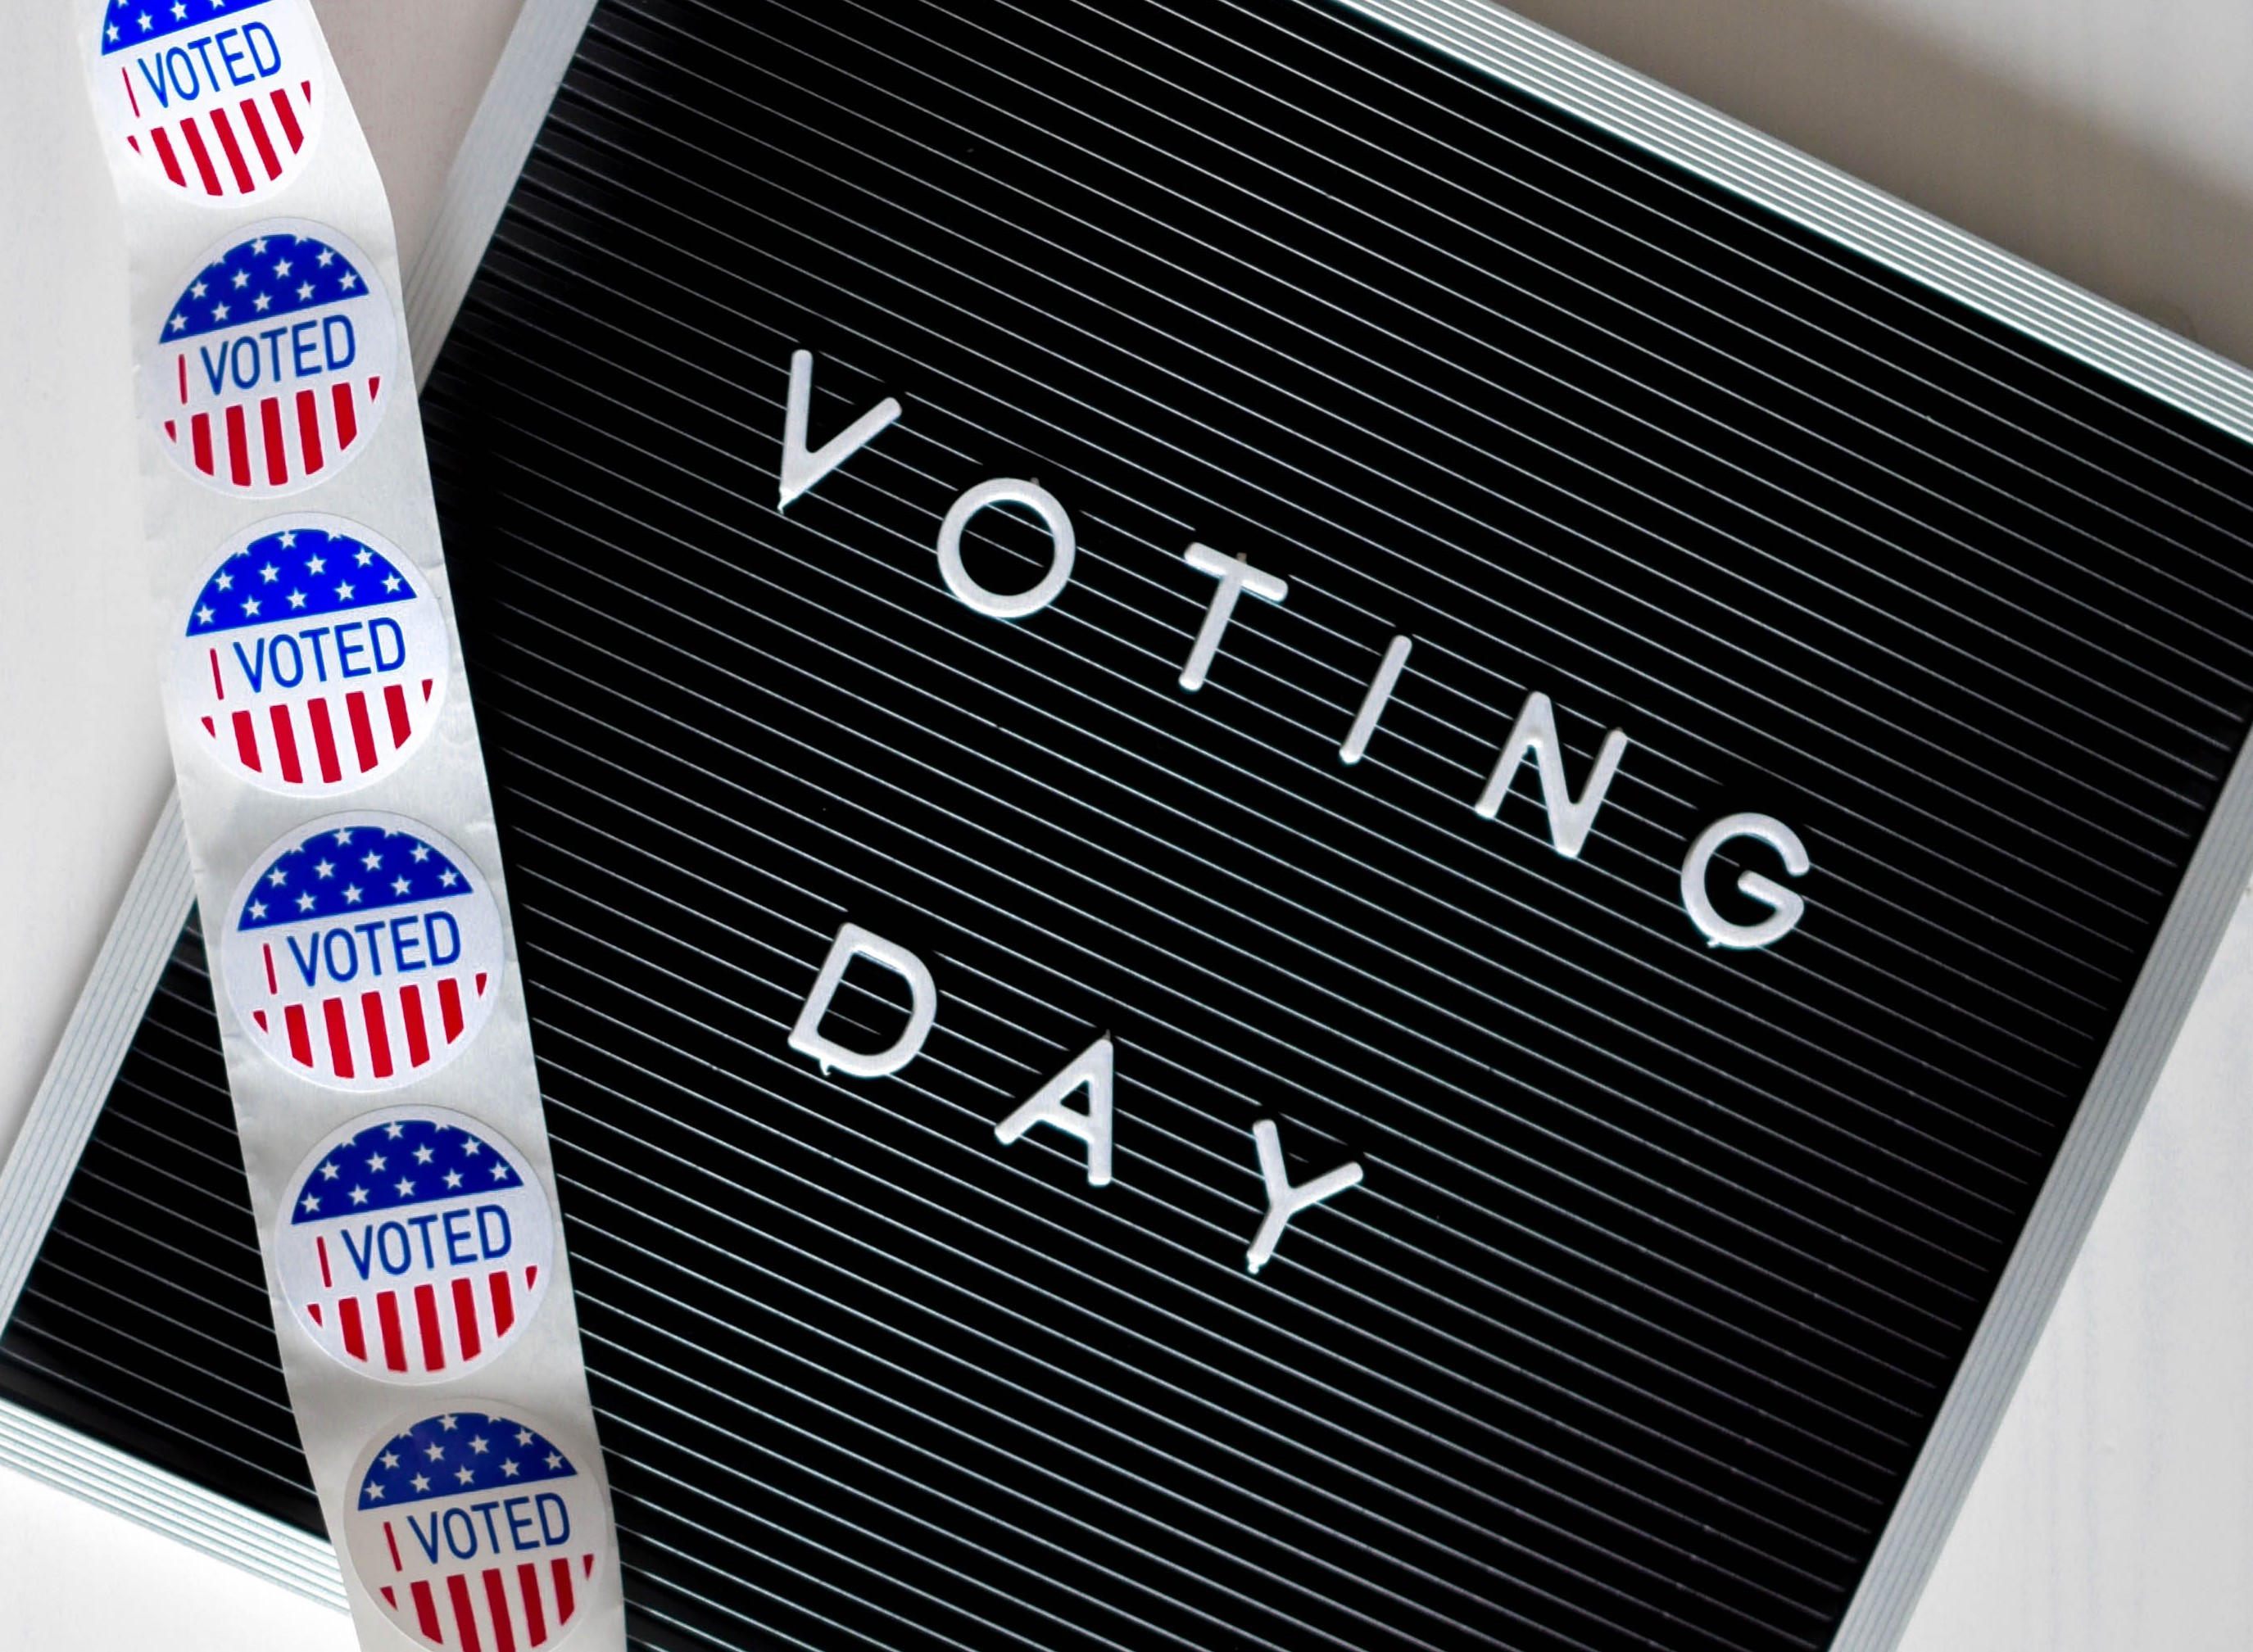 """Voting Day letterboard with strip of """"I VOTED"""" stickers draped over letterboard"""